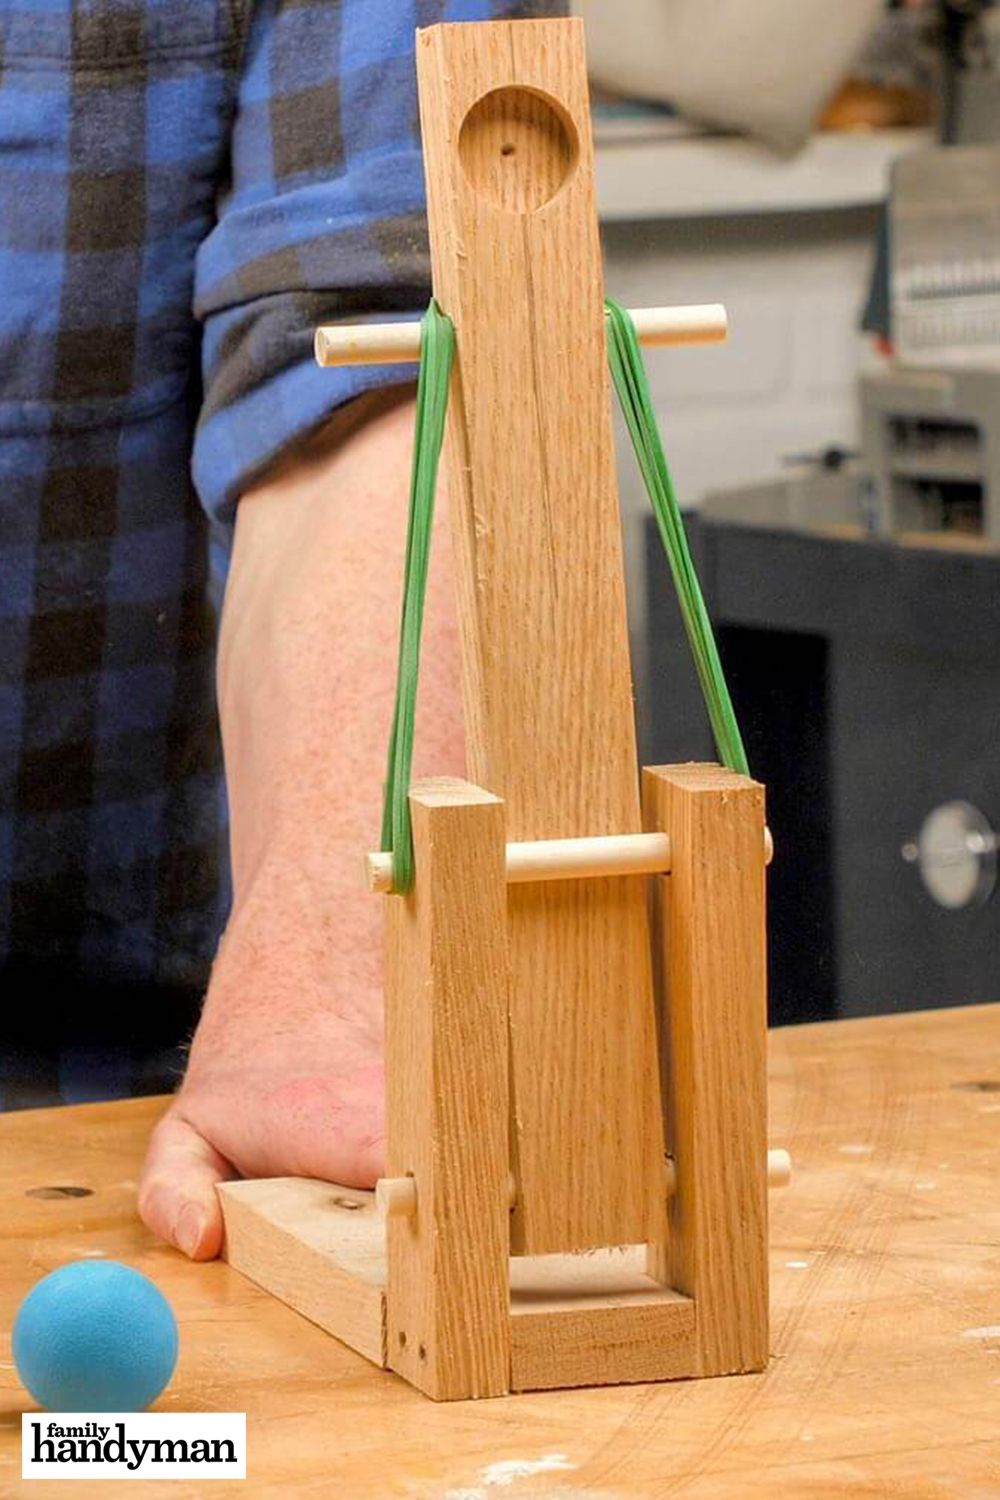 31 Indoor Woodworking Projects To Do This Winter Woodworking Projects Diy Woodworking Projects Easy Woodworking Projects